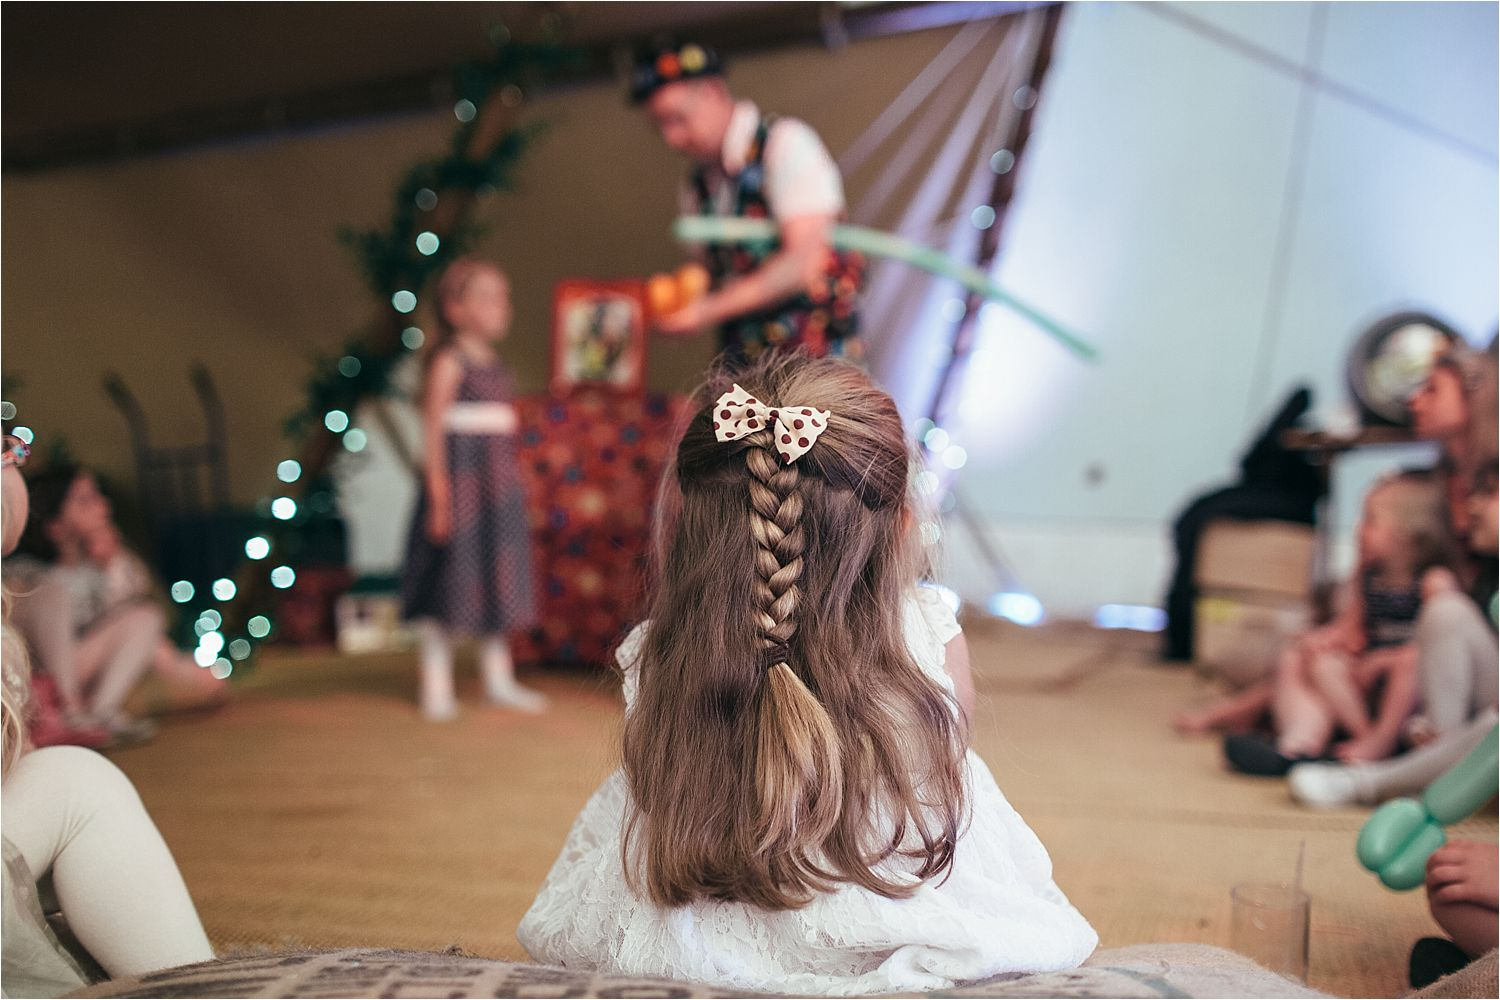 Back view of little girl's plait at Manchester tipi wedding reception